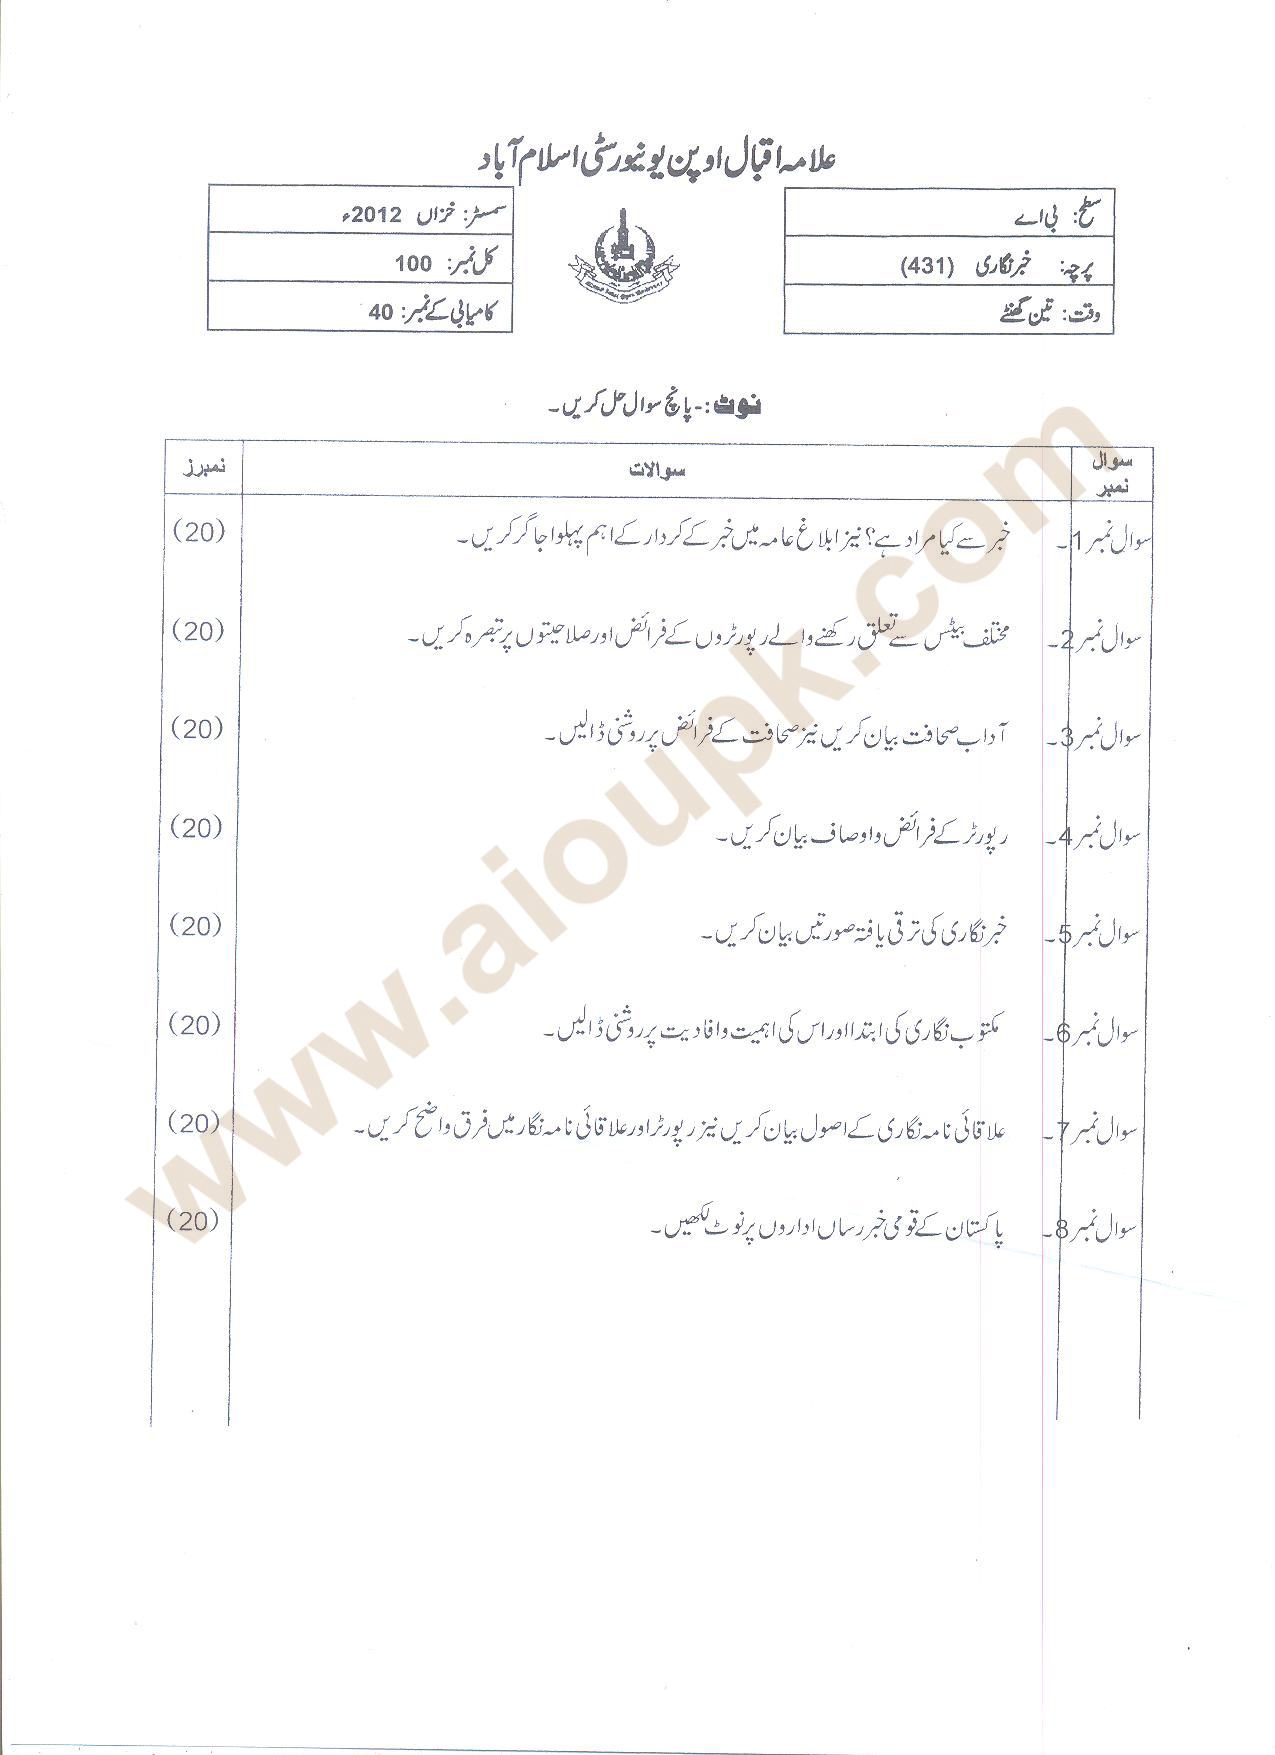 AIOU Old Paper Reporting Code 431 BA